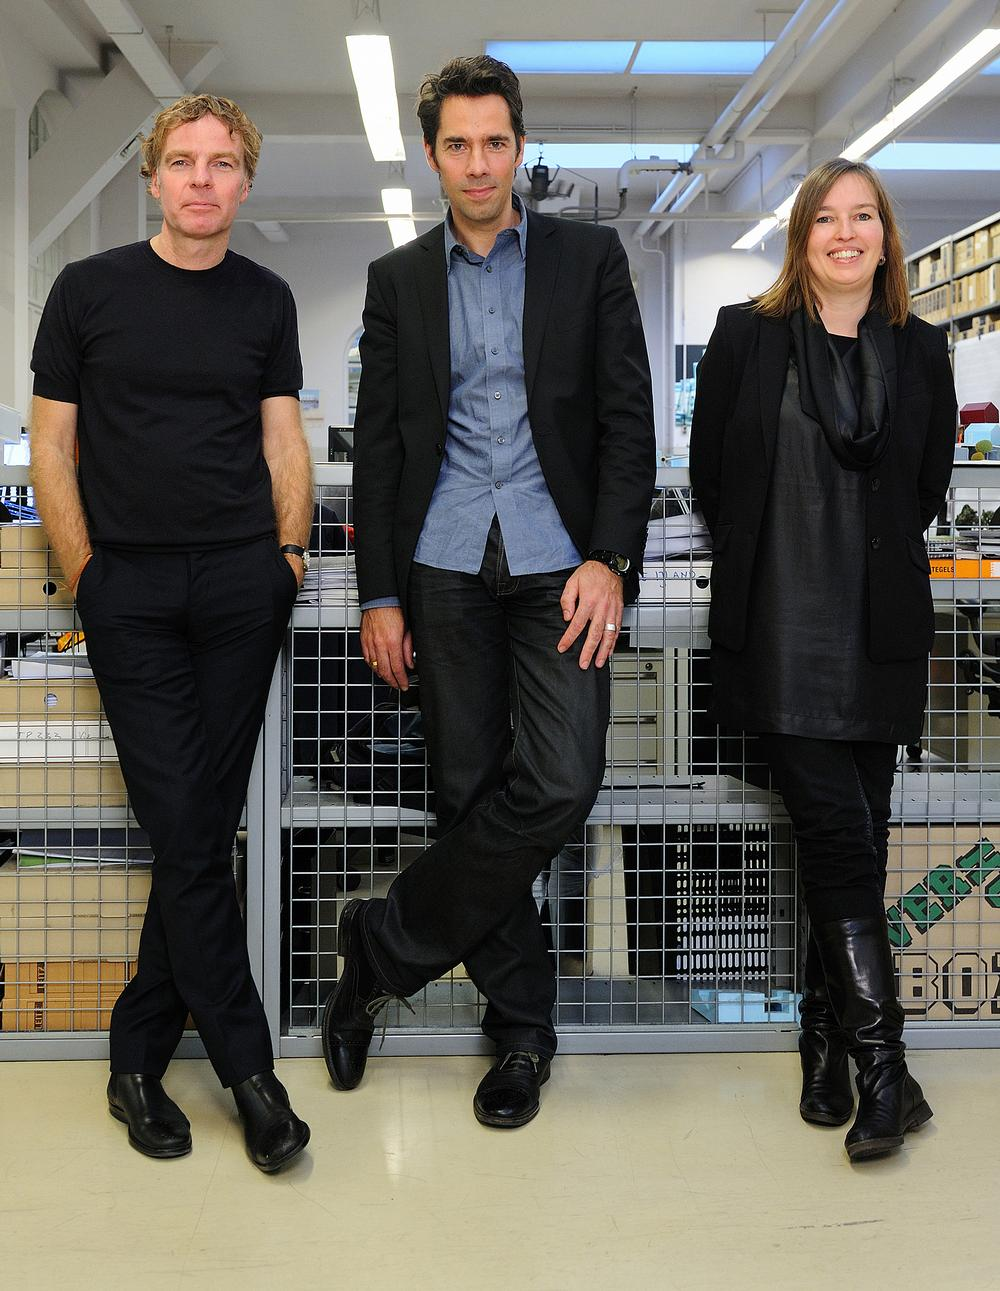 Winy Maas, Jacob van Rijs and Nathalie de Vries founders of MVRDV